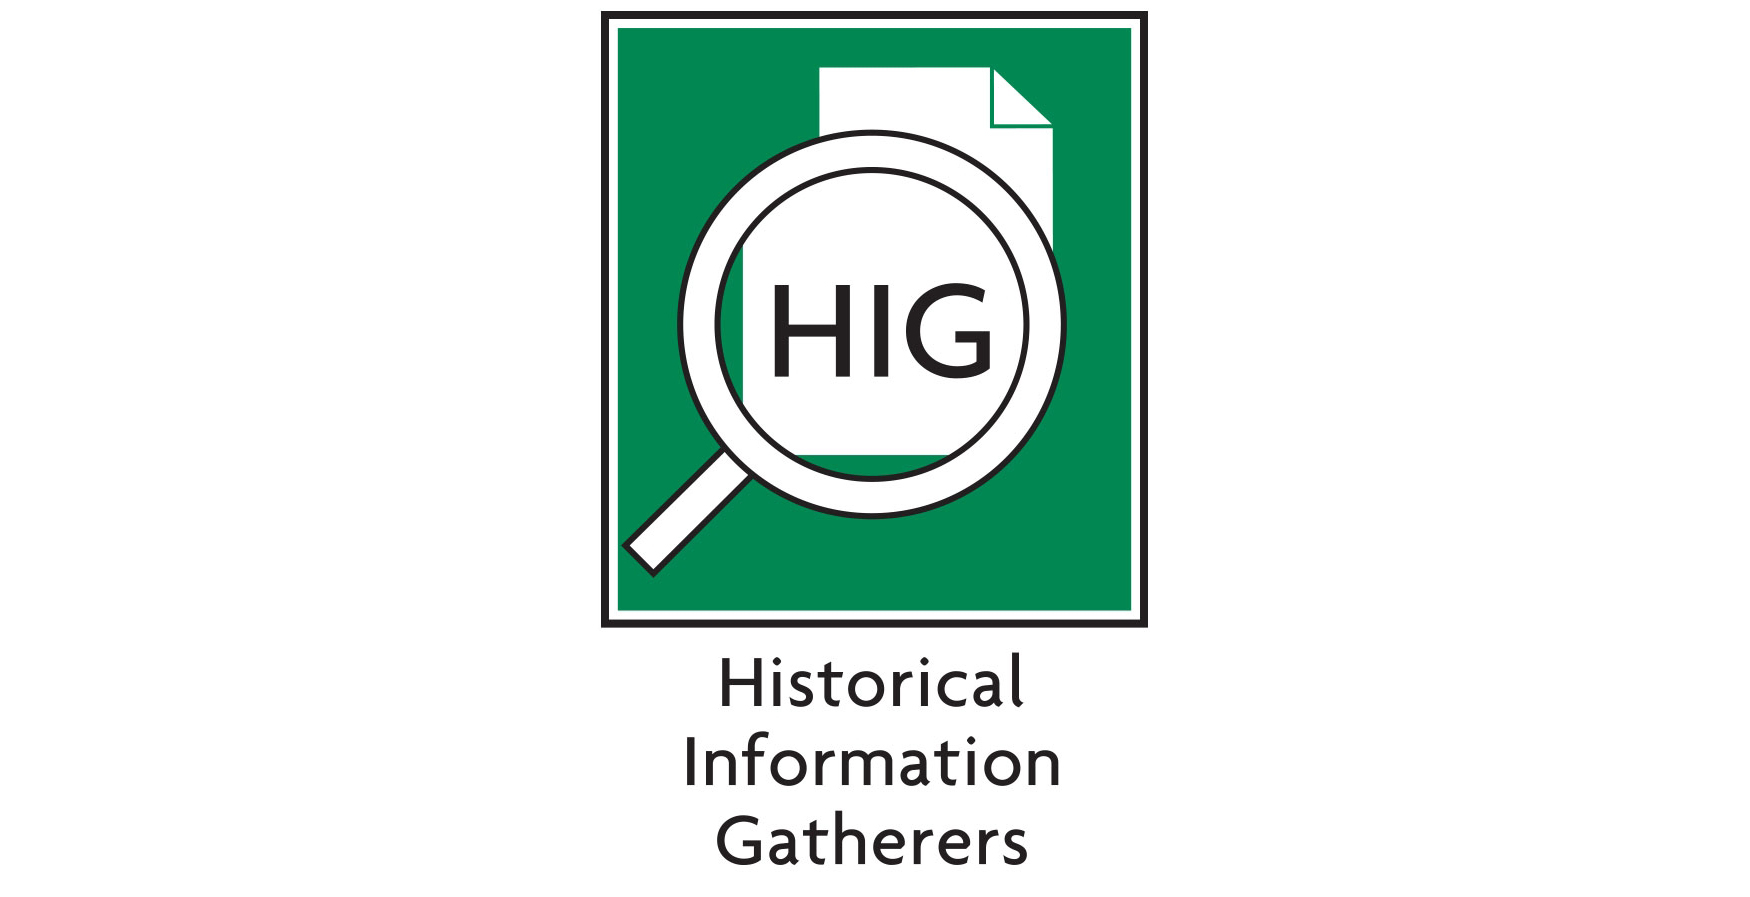 Historical Information Gatherers